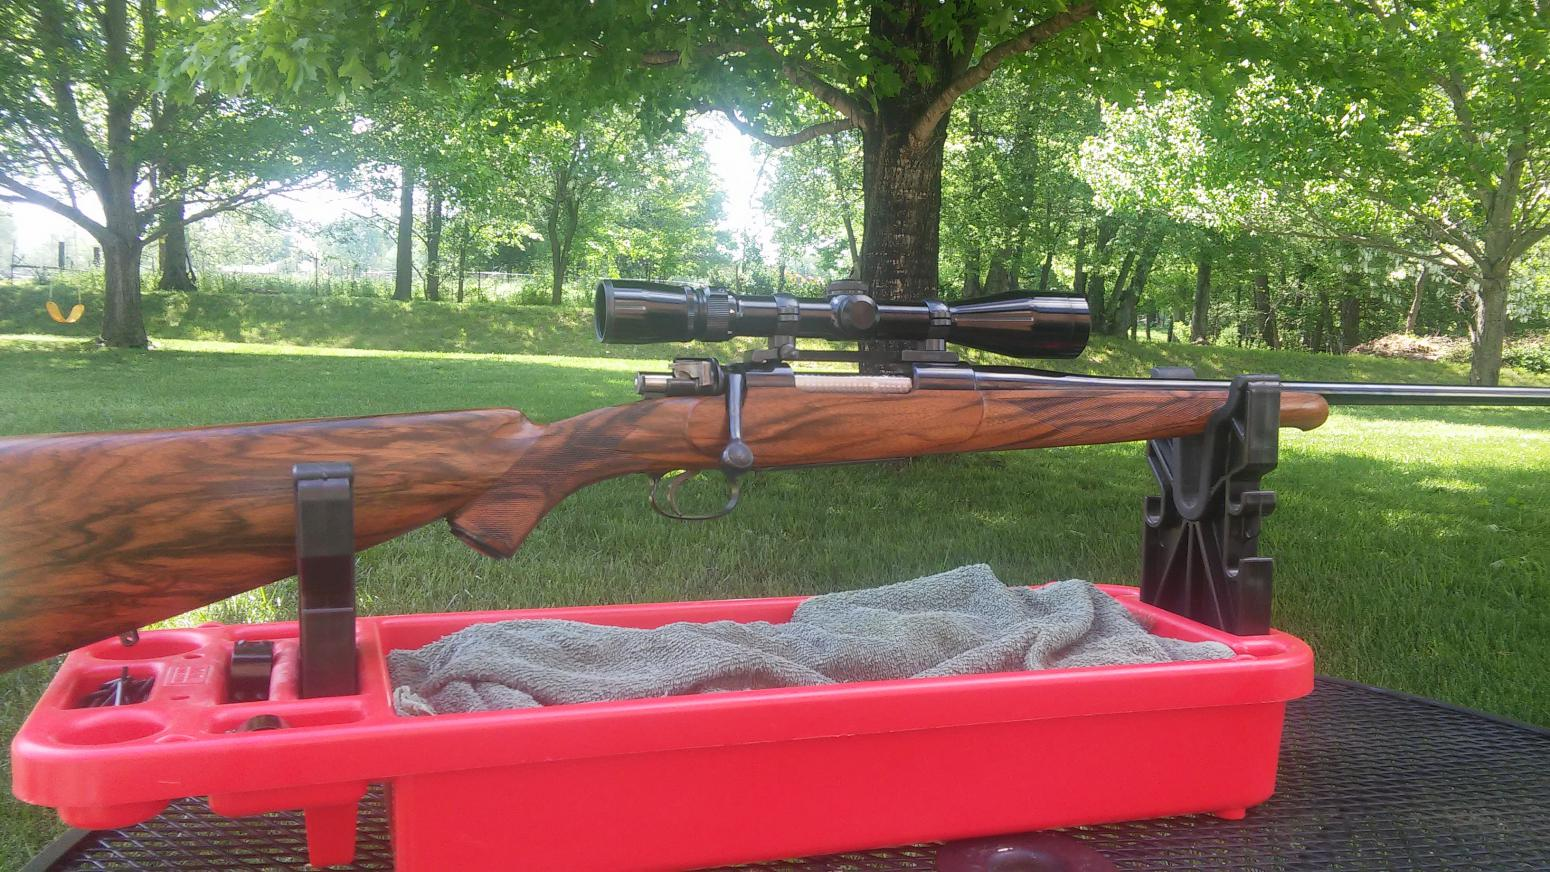 Learn These 35 Whelen Rifle Recoil {Swypeout}